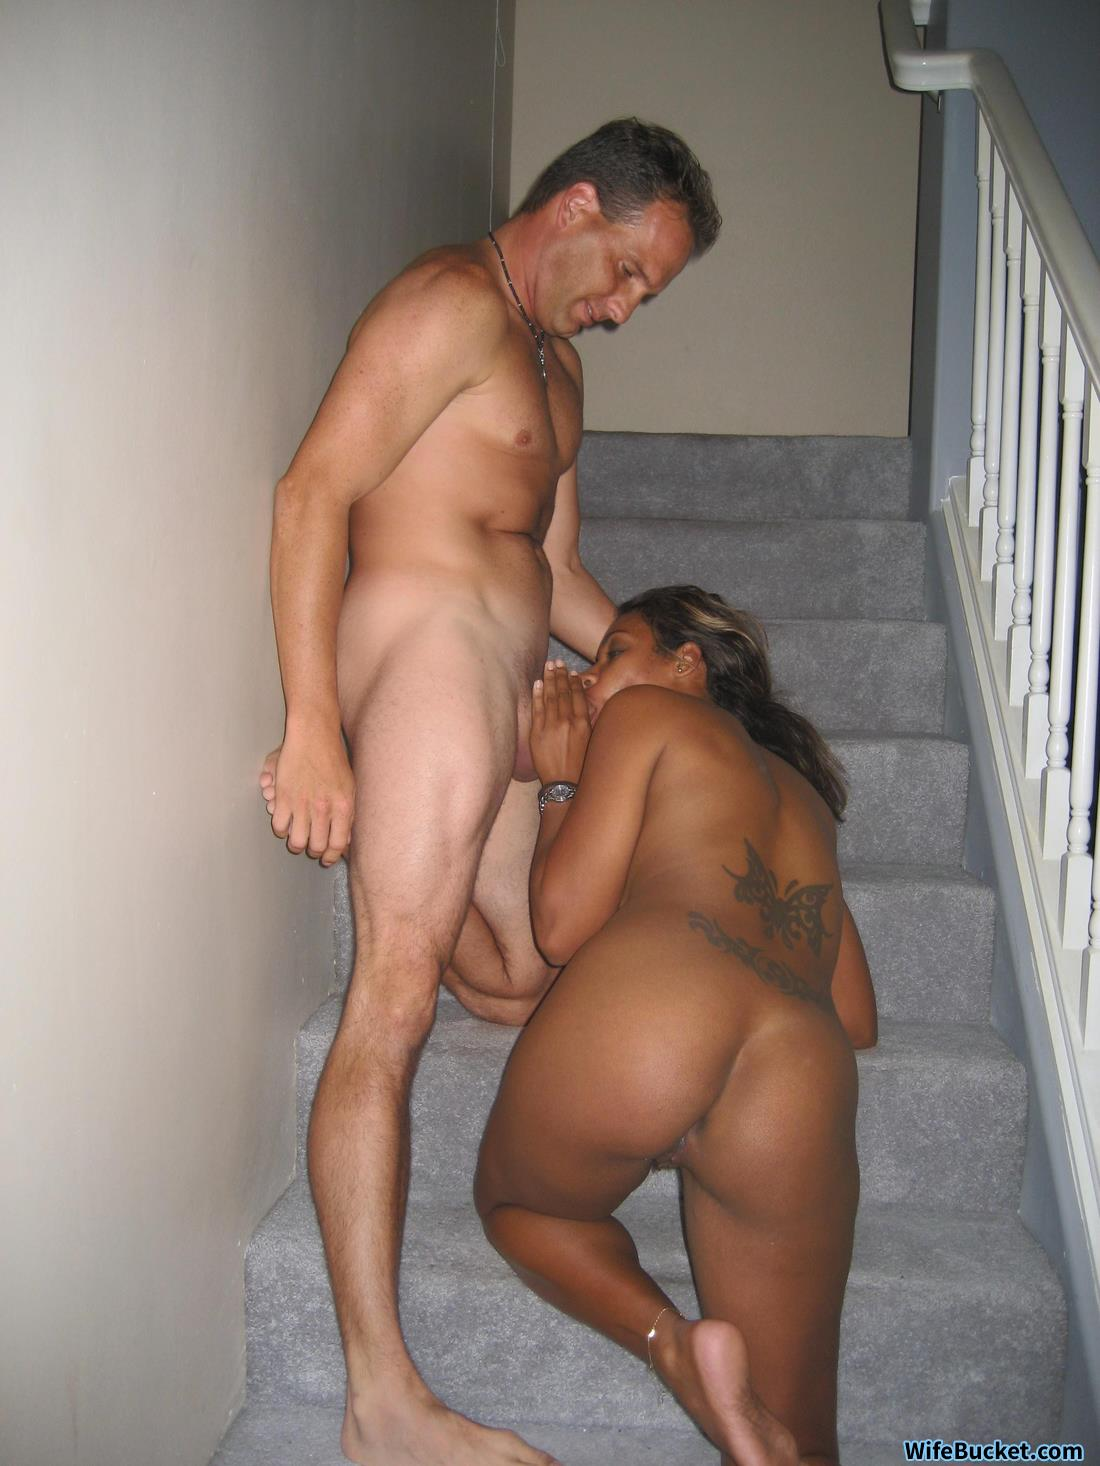 WifeBucket Pics | Cuckold wife blowjob